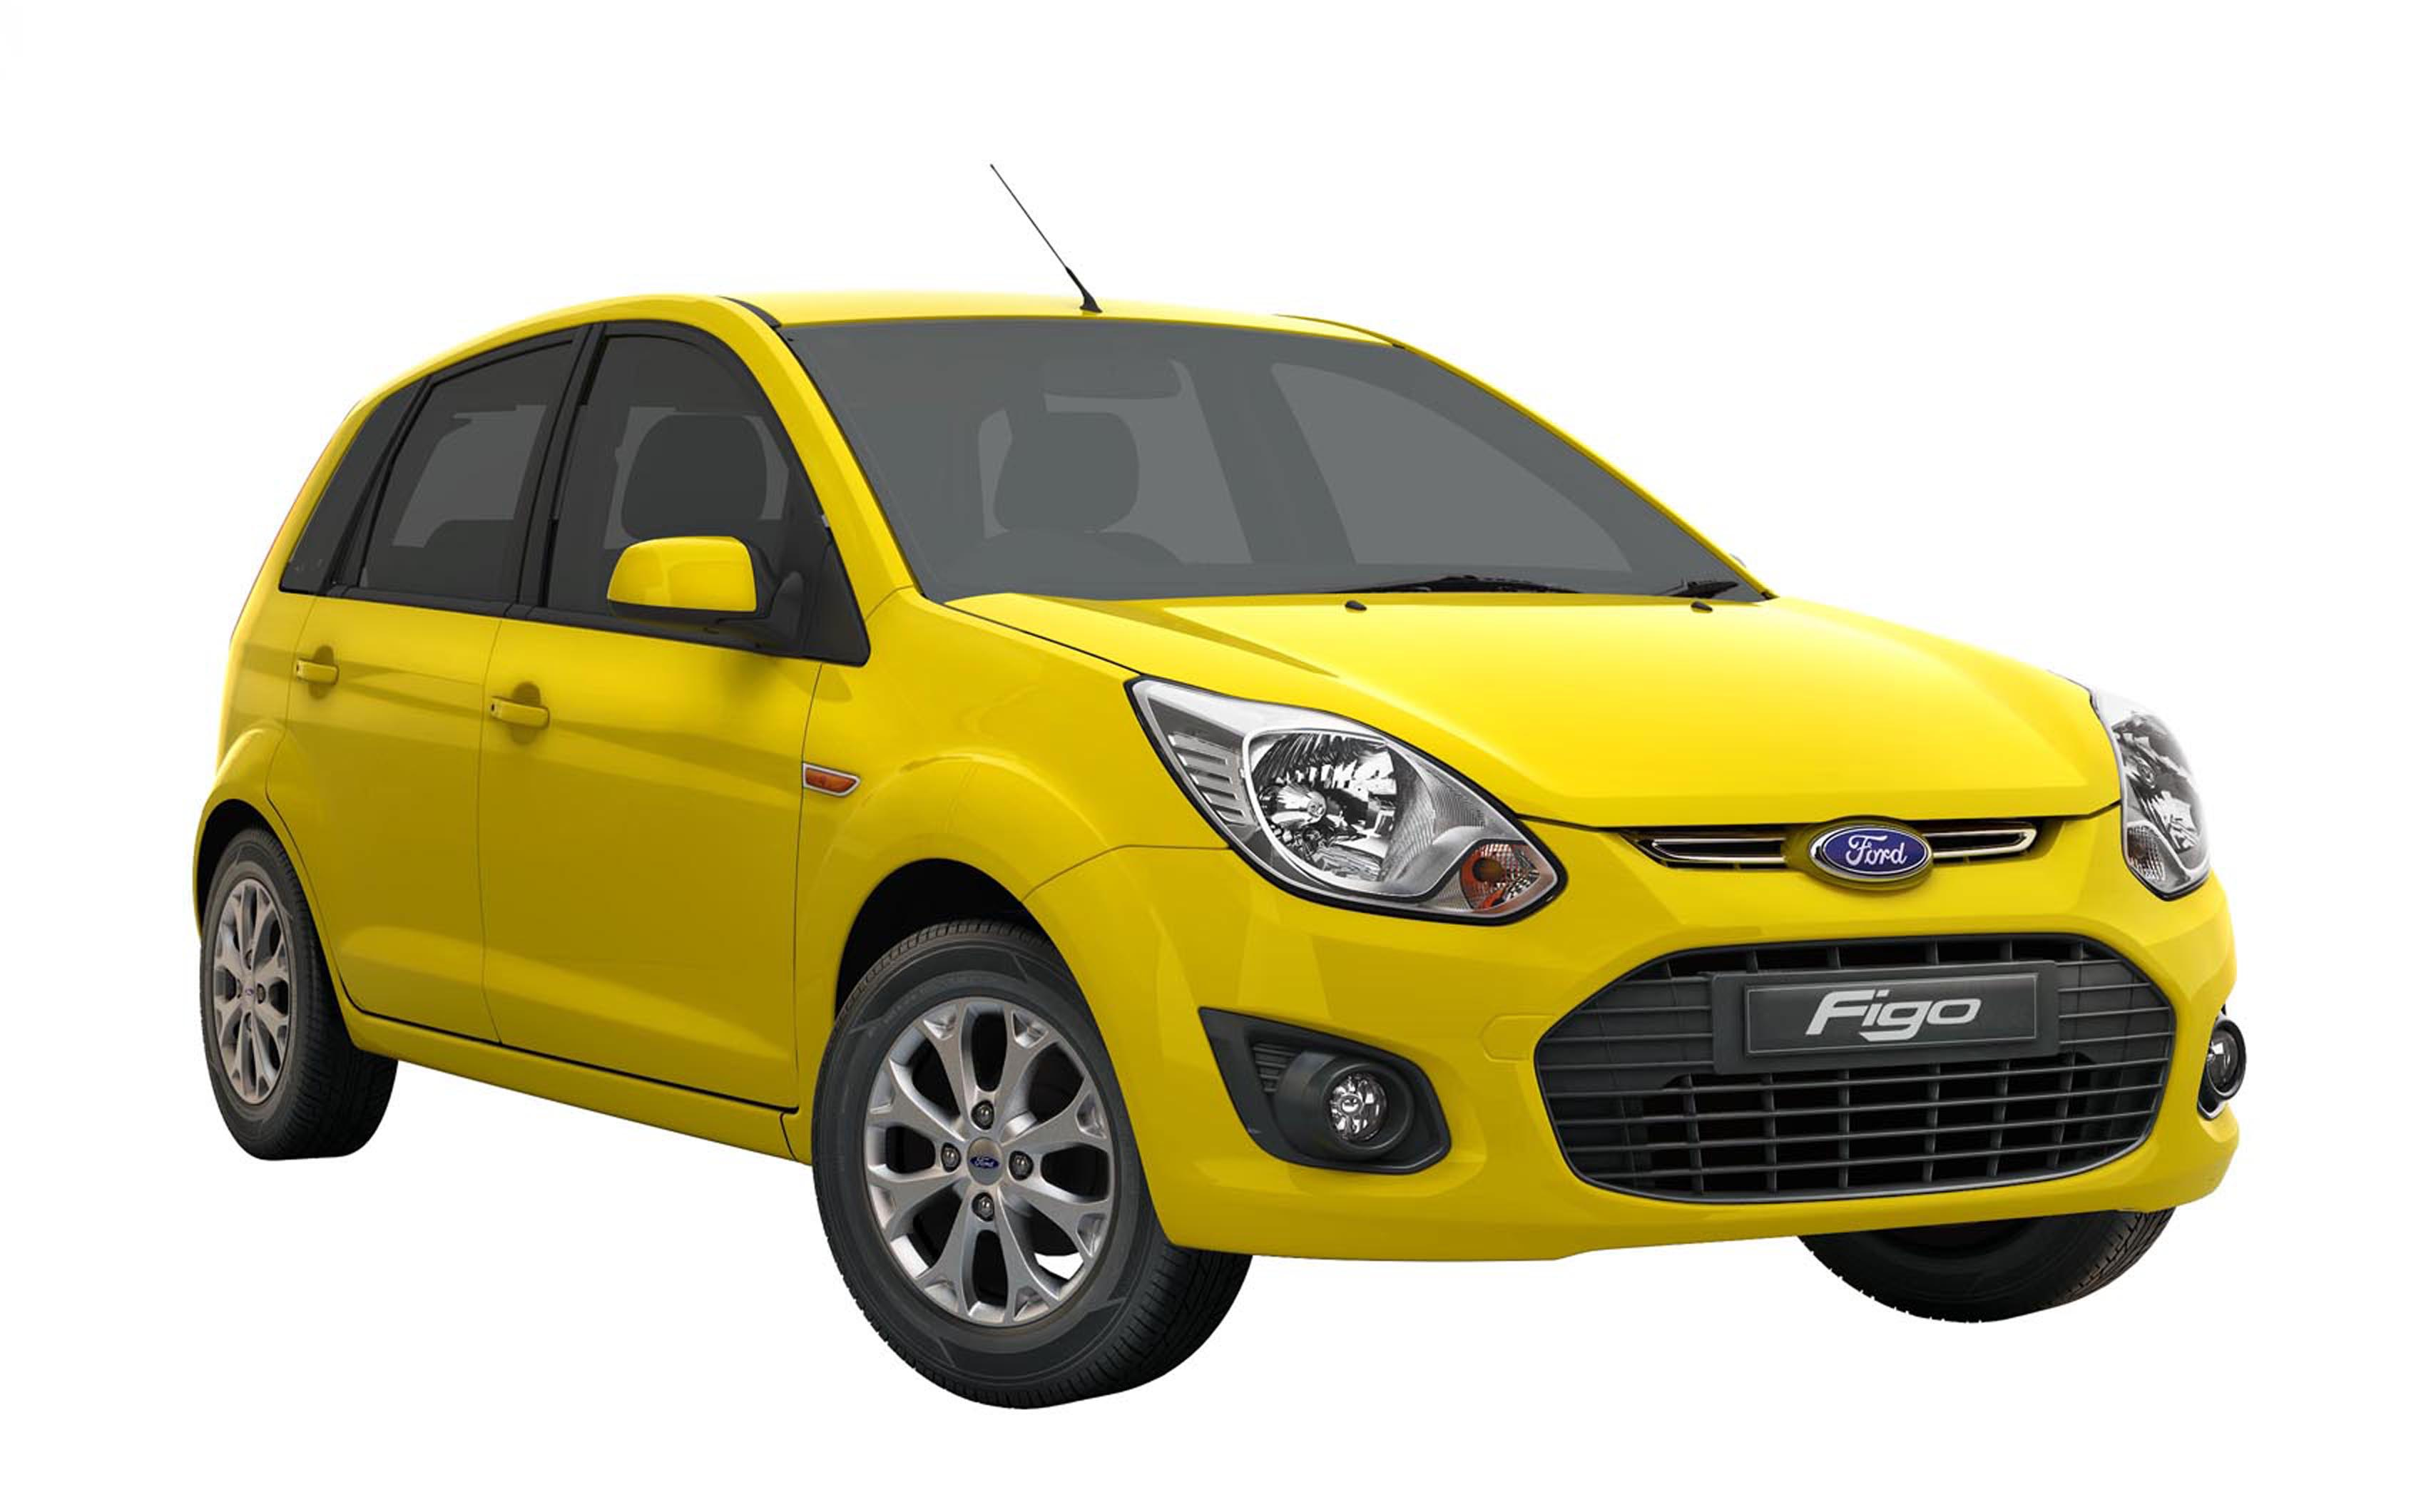 20150415104358_the-new-ford-figo